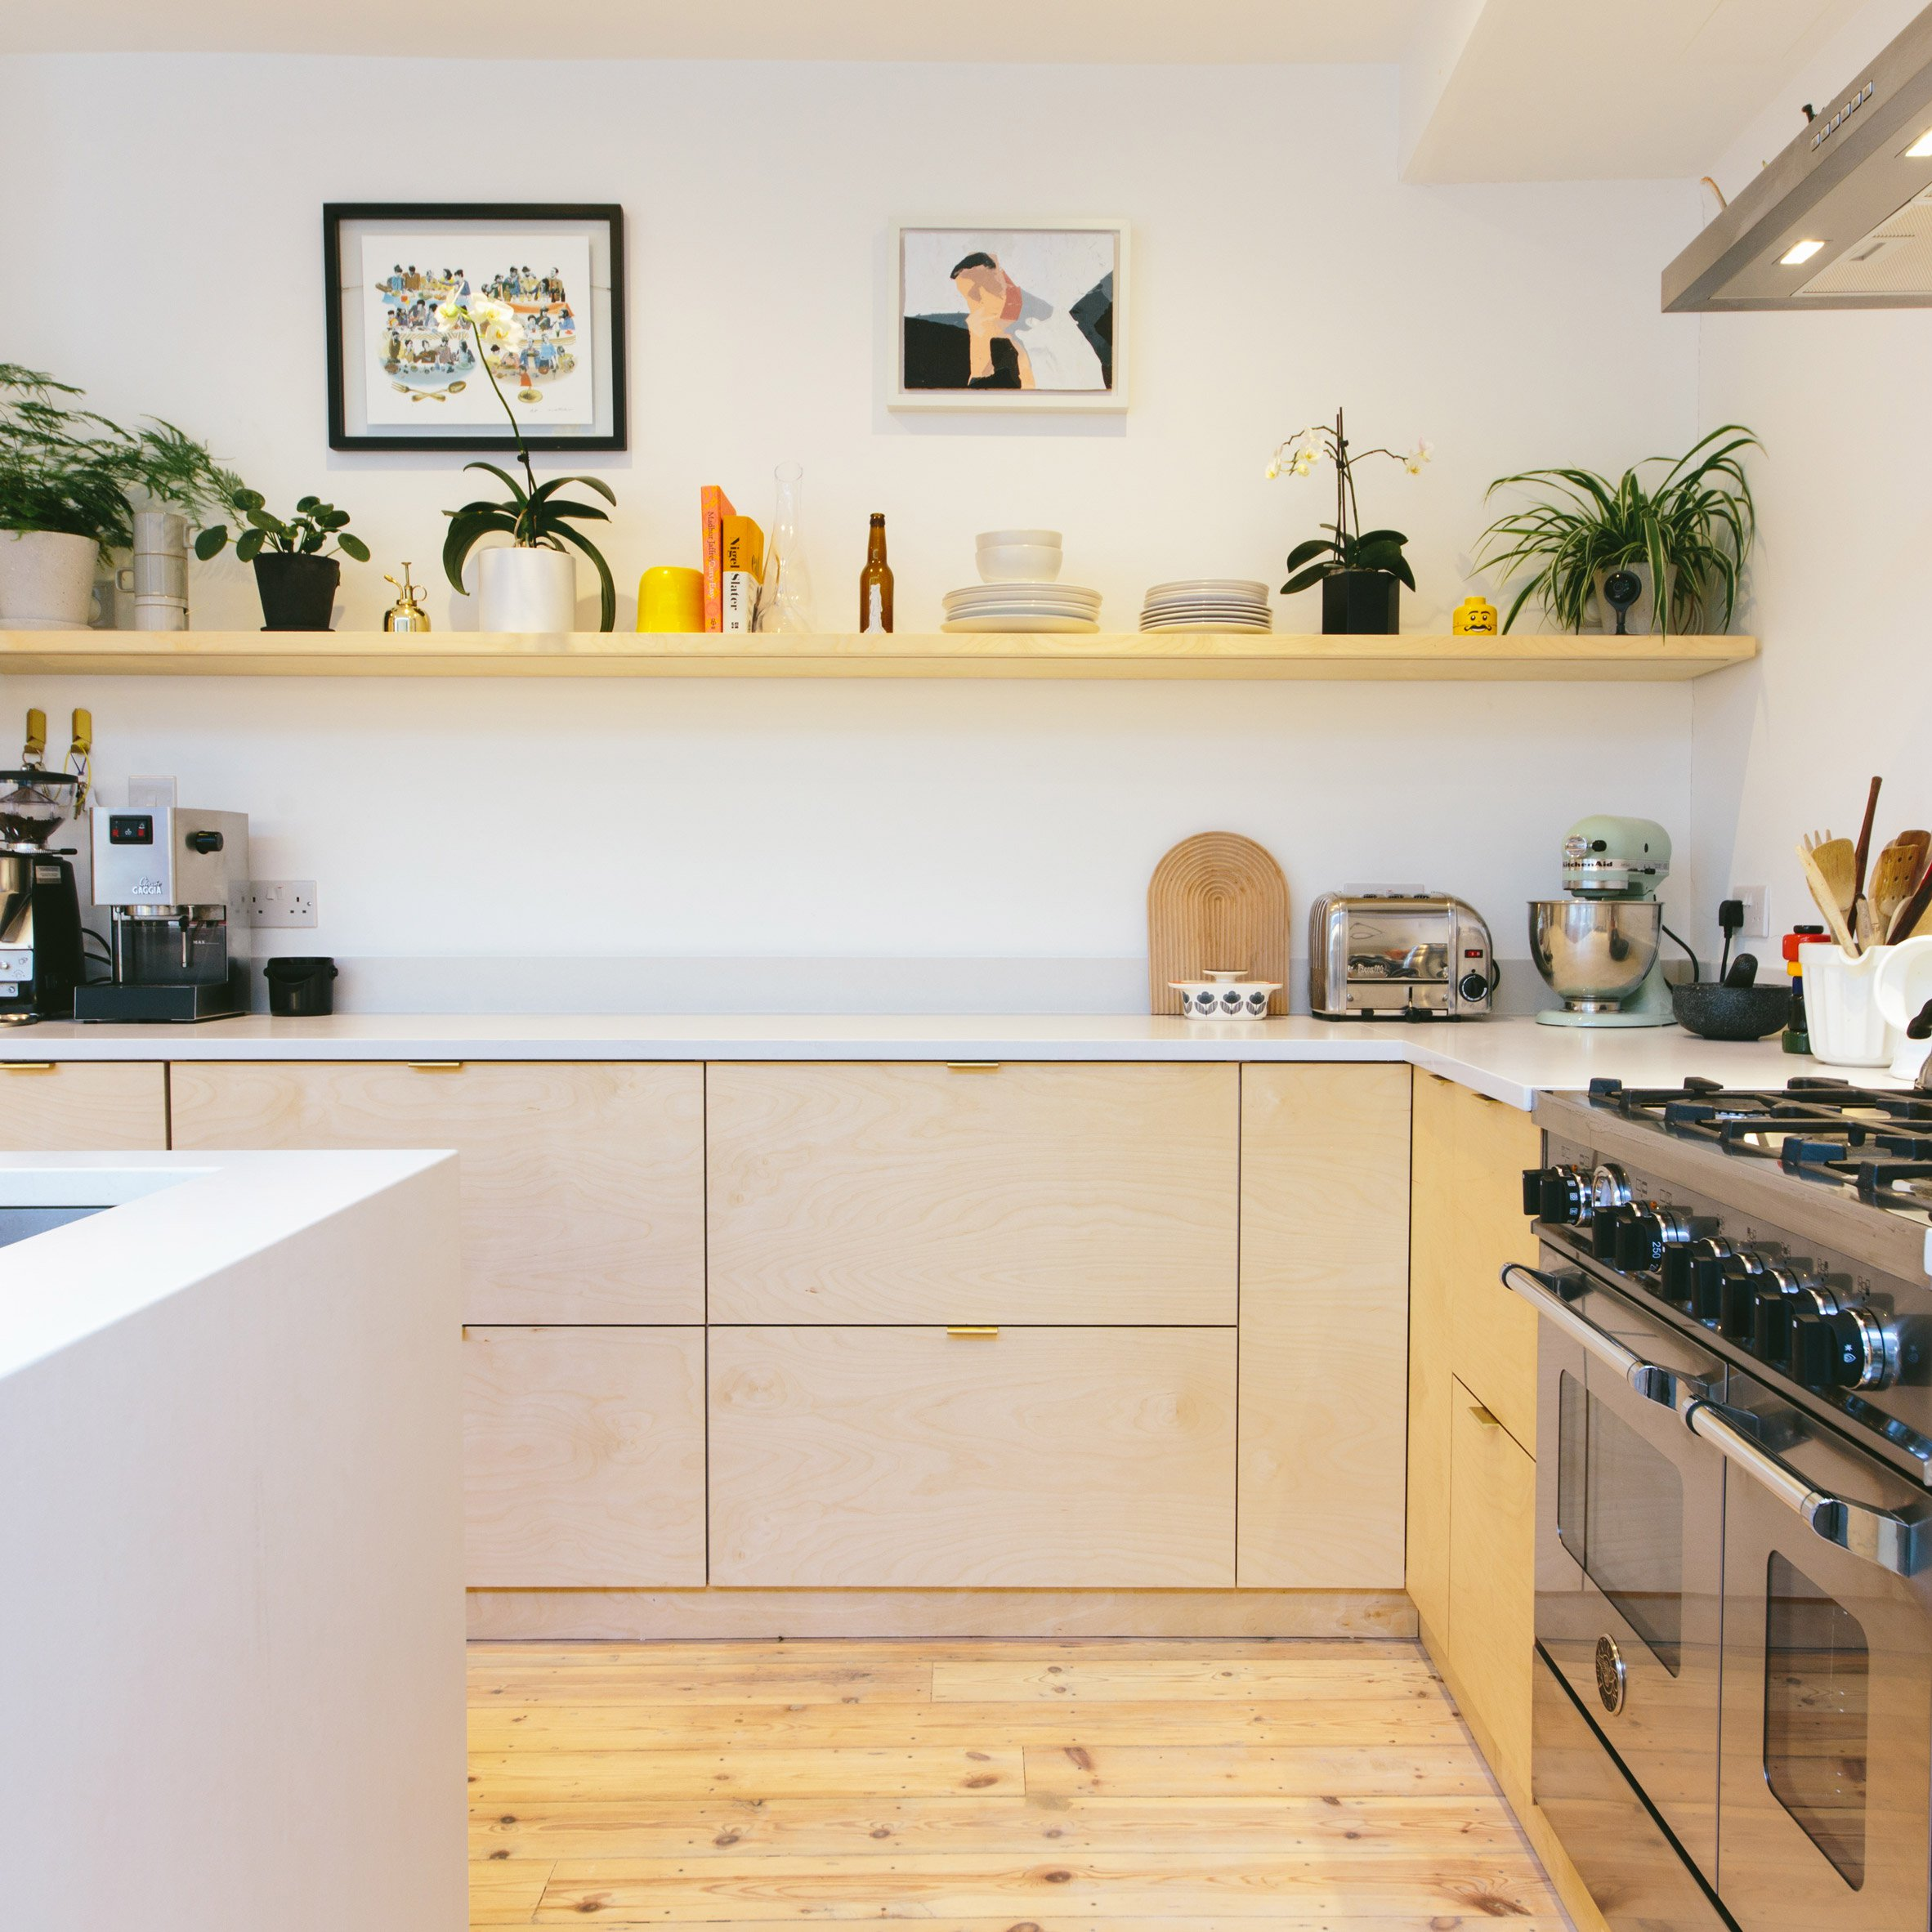 Current obsession: Plywood kitchens — Patchwork Harmony